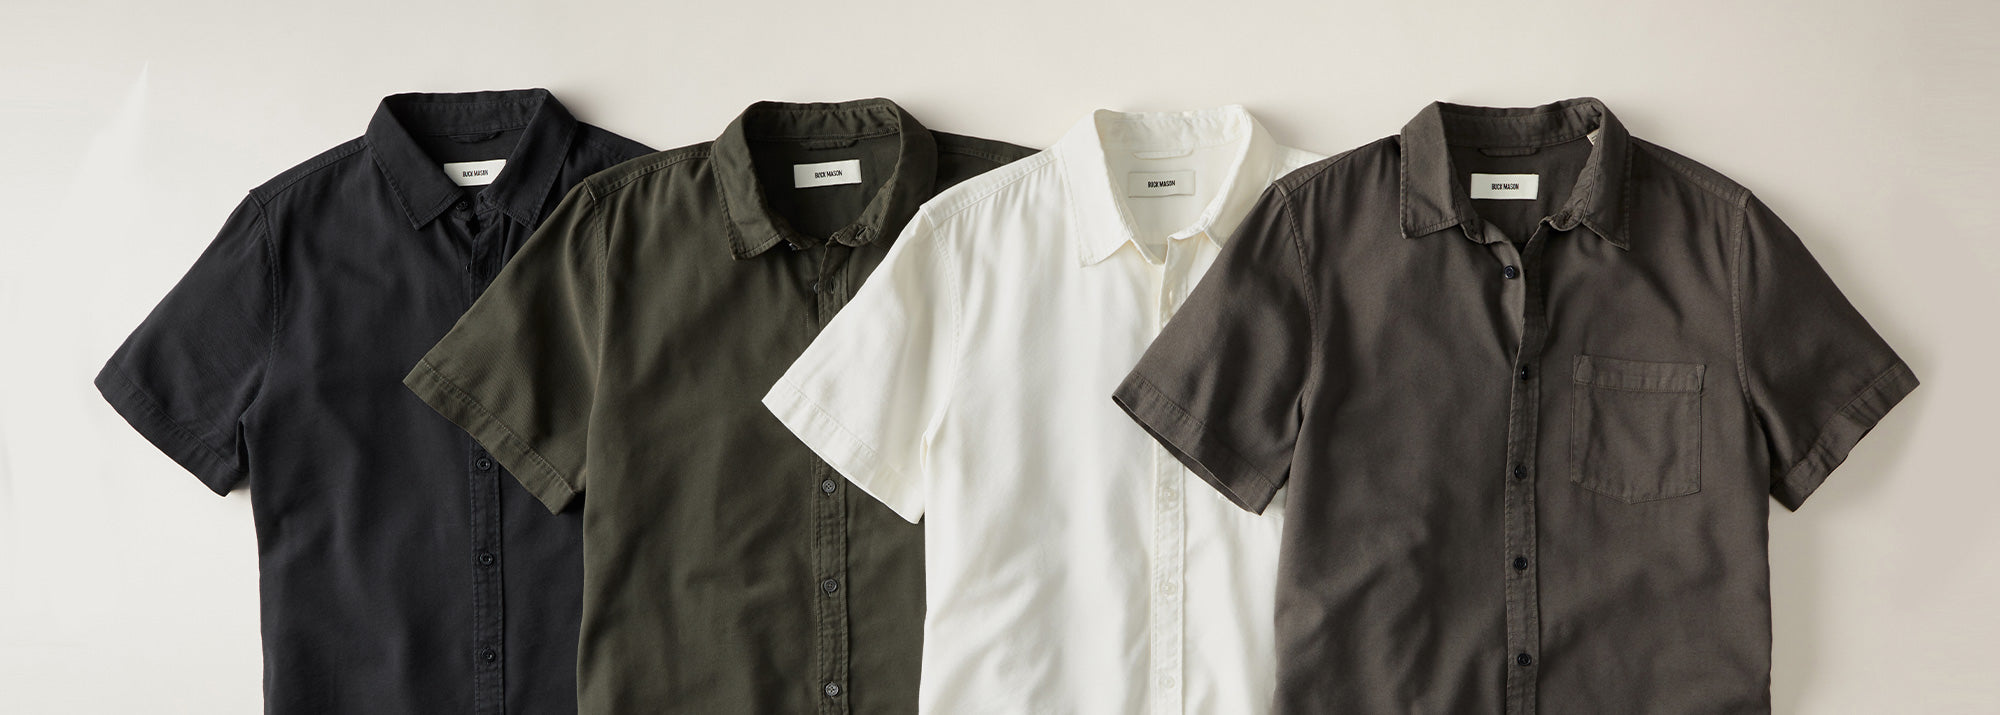 Buck Mason Short Sleeve Shirts